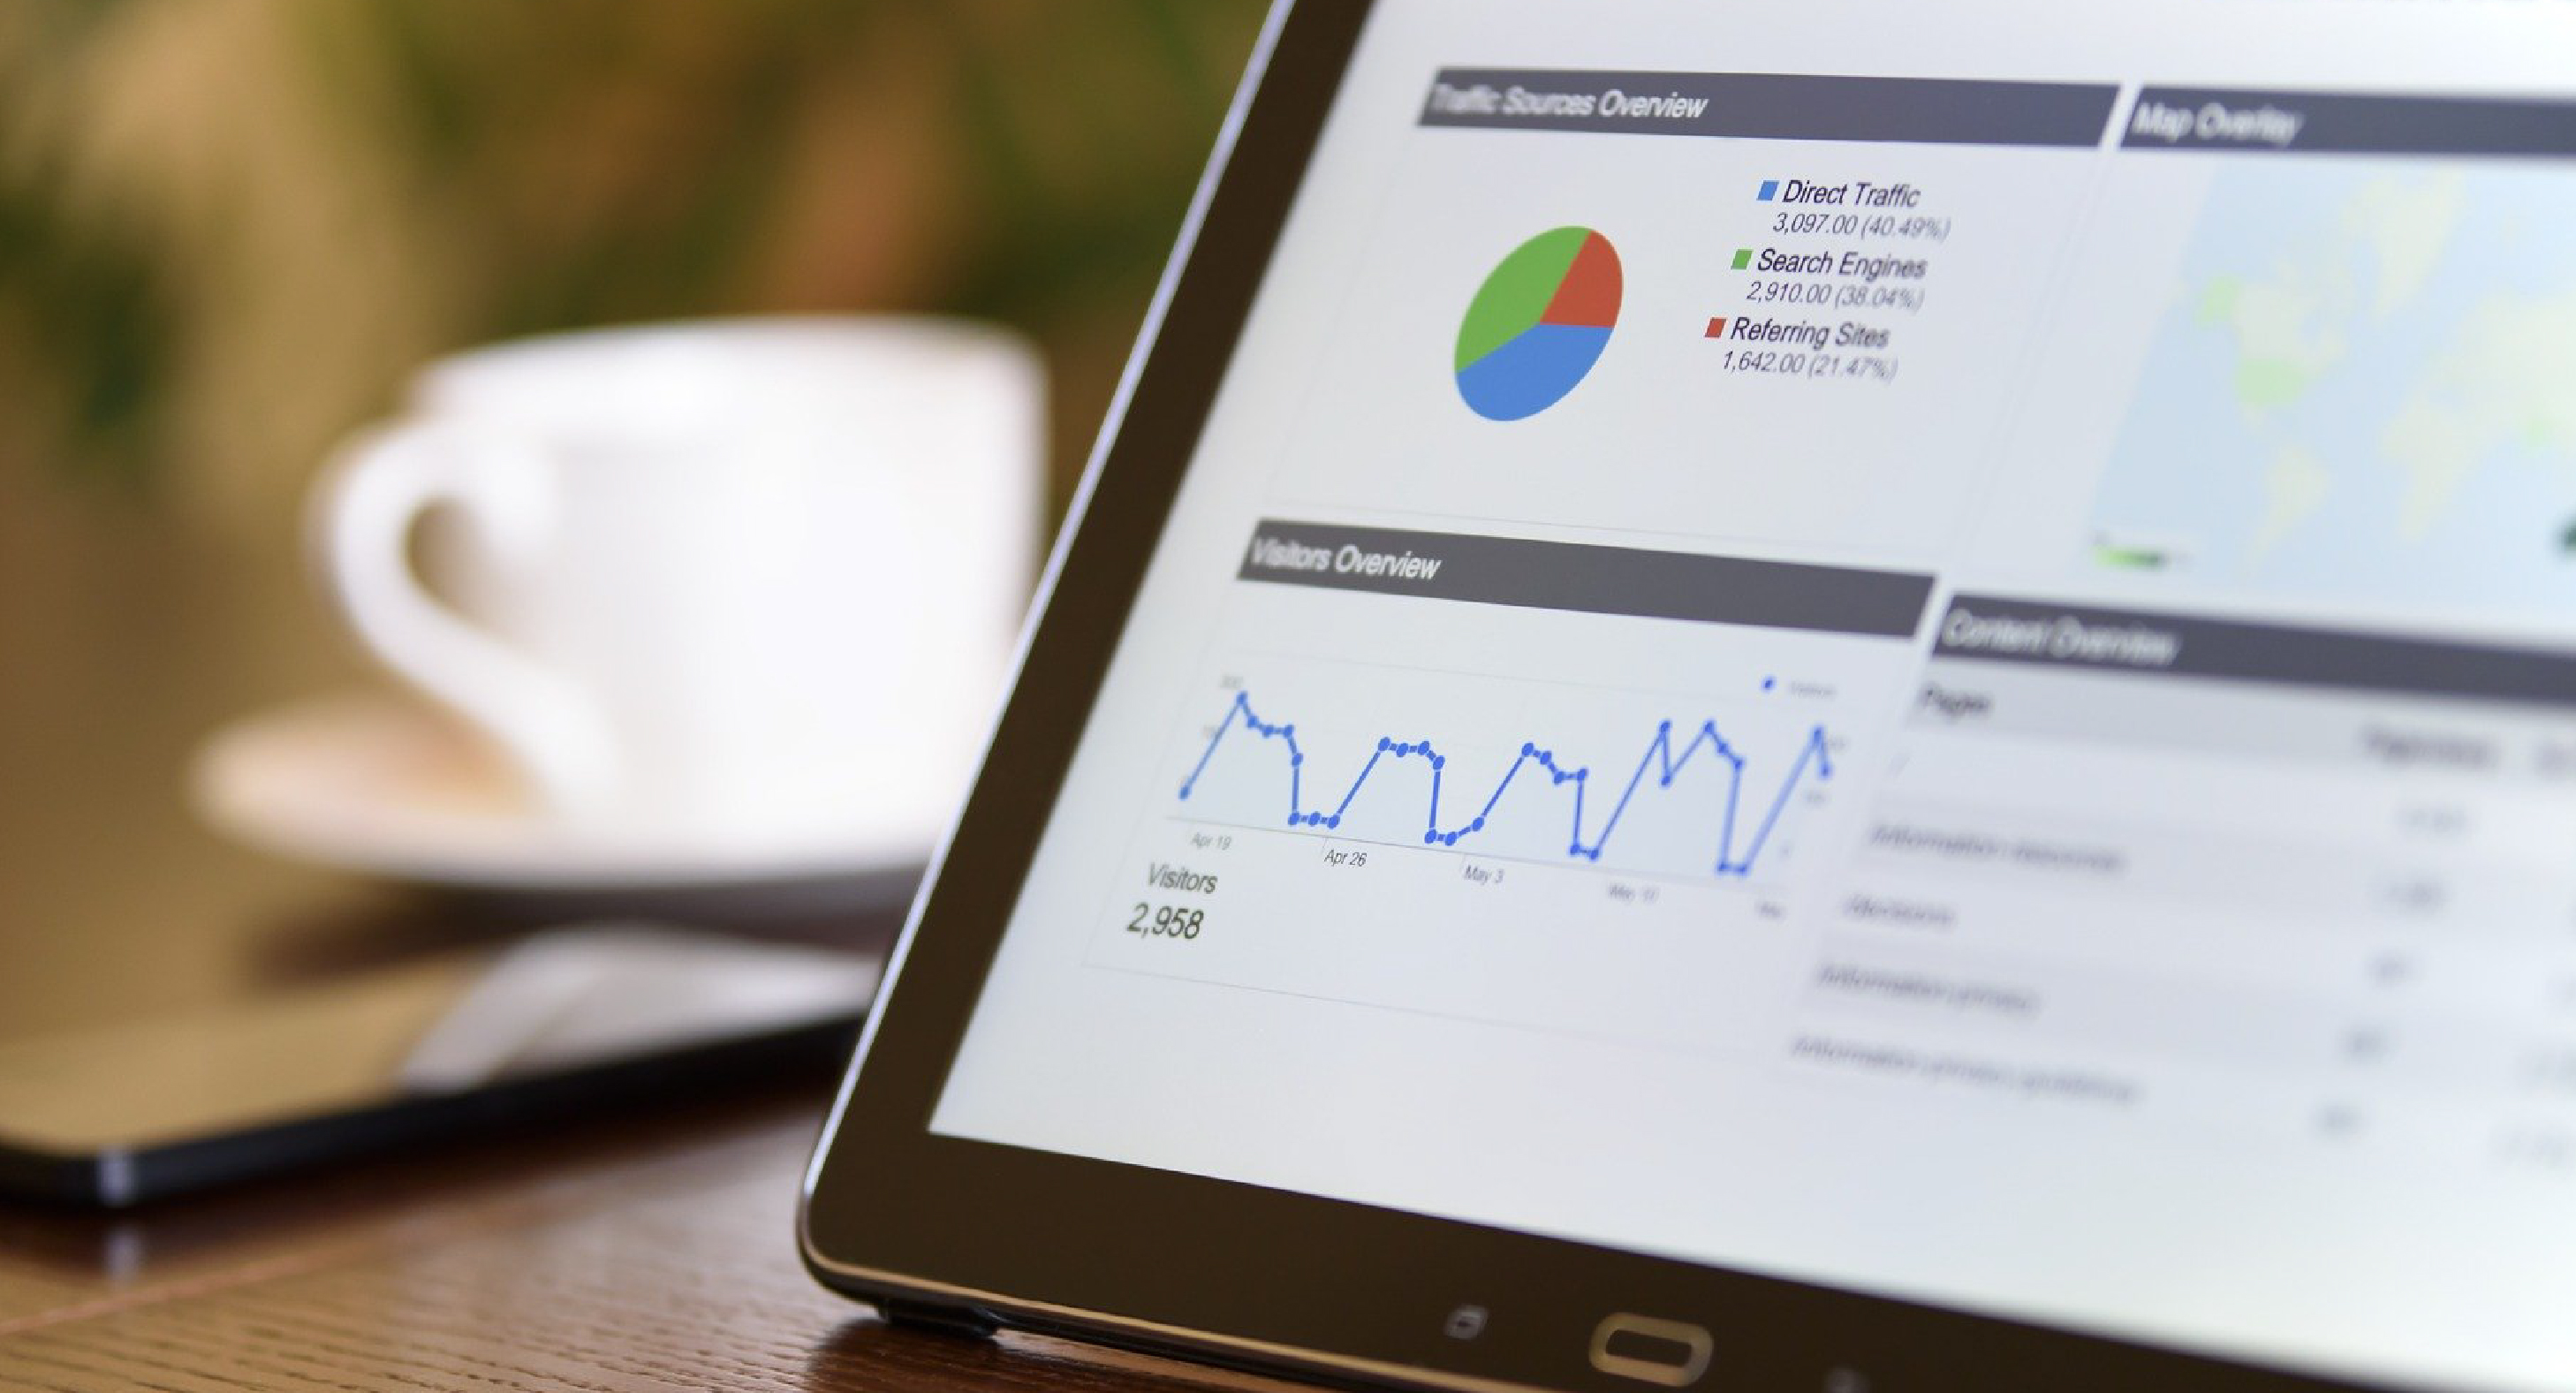 SEO: The Basics And How To Use It For Your Small Business